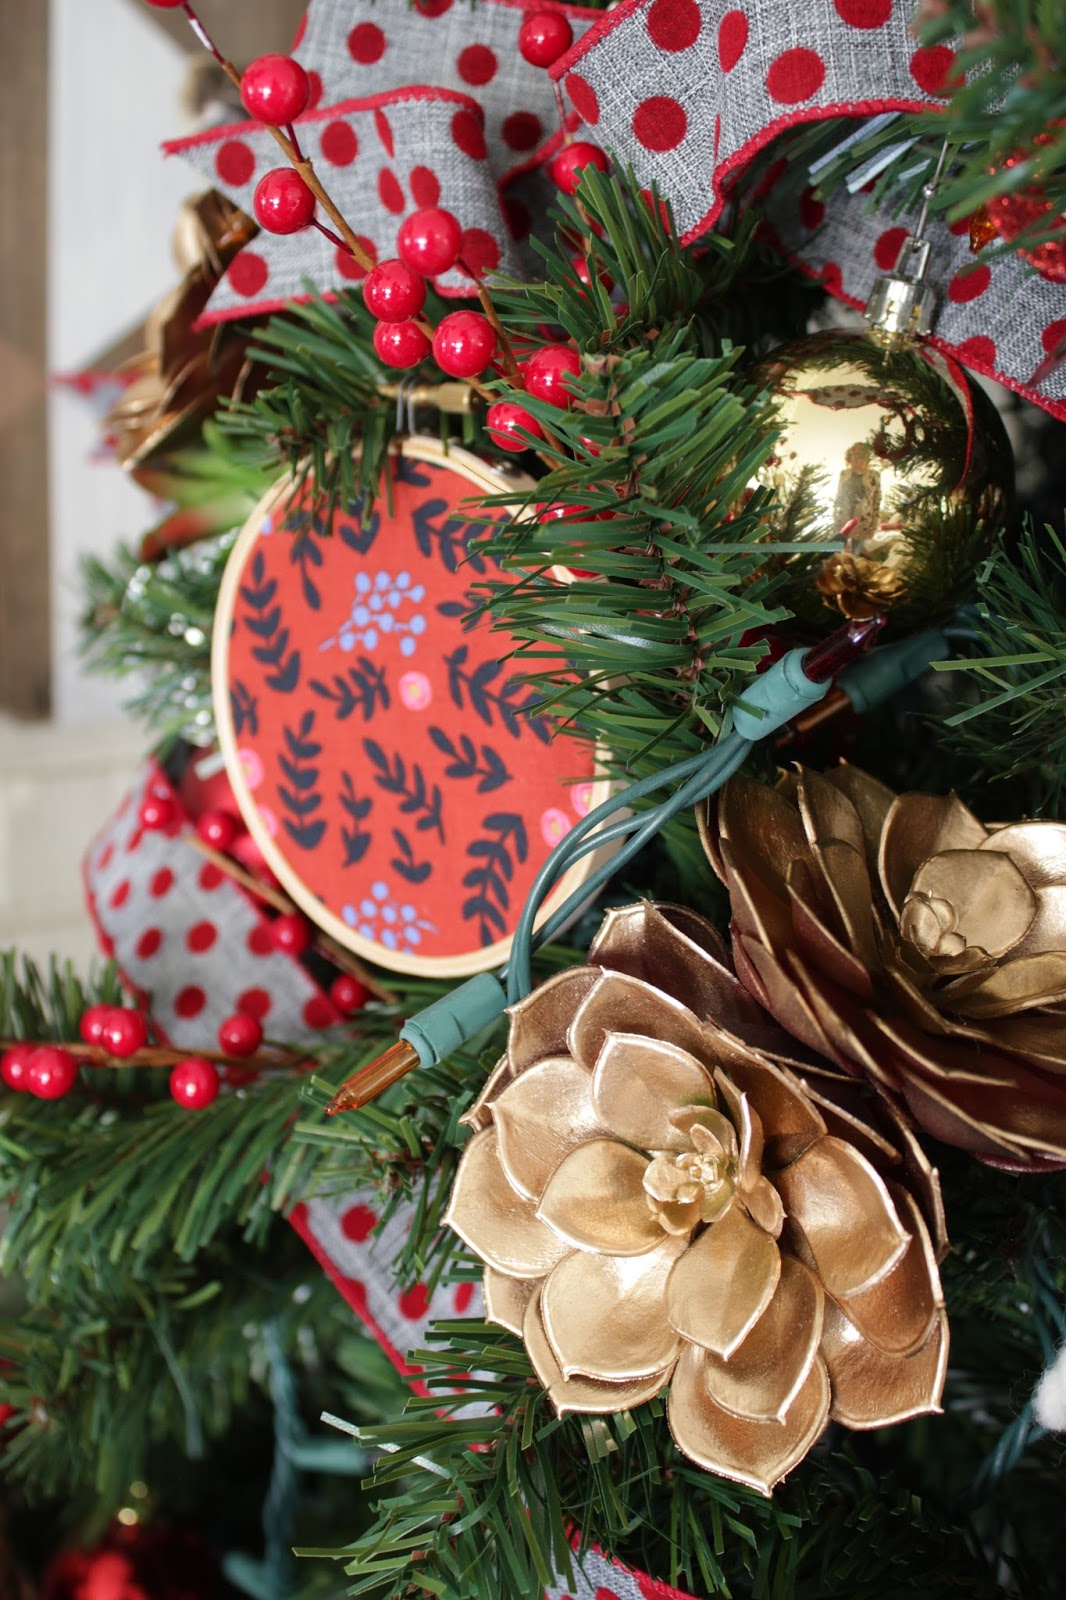 My Home Style: Artsy, Eclectic, Homemade Christmas Tree